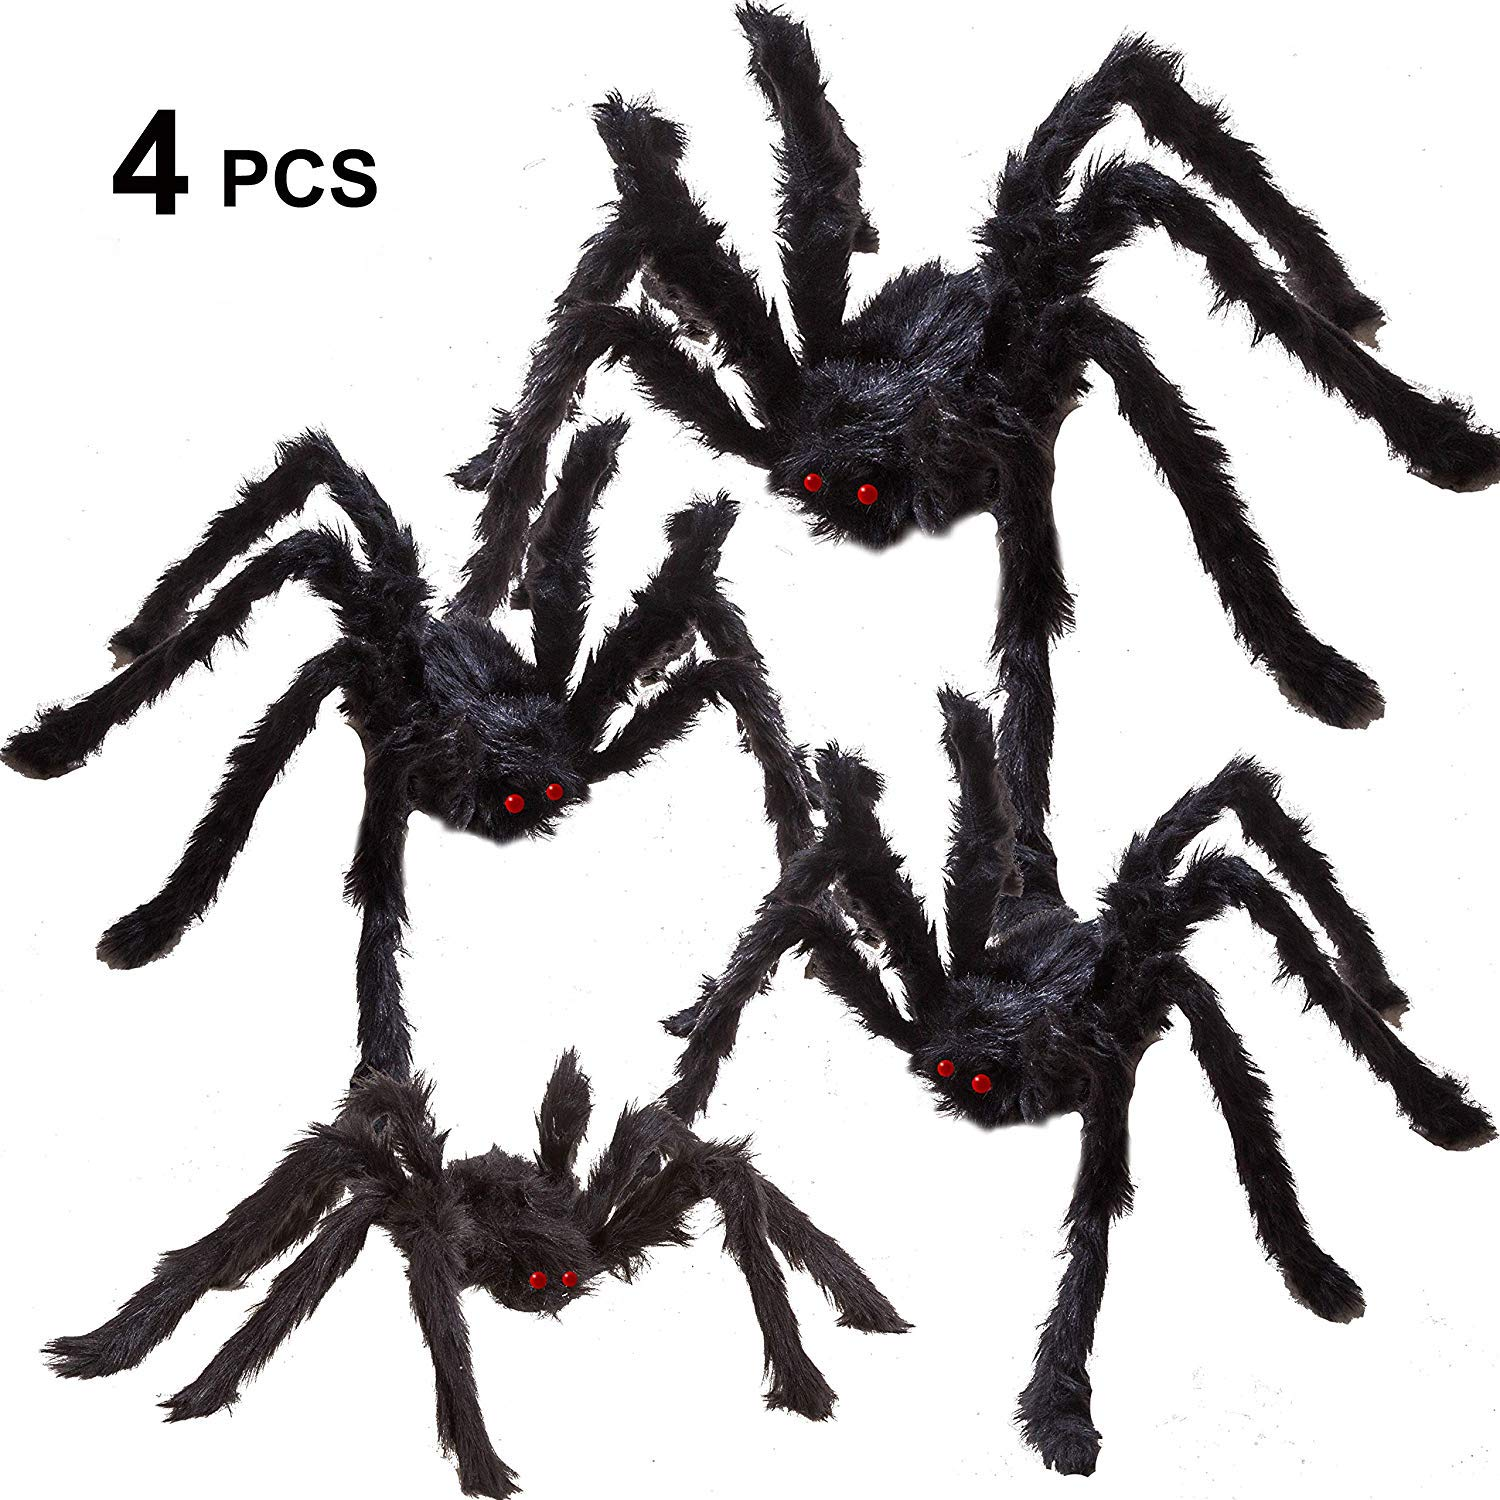 Four Halloween Realistic Hairy Spiders Set, Valuable Halloween Props, Halloween Spider Set for Indoor and Outside Decorations